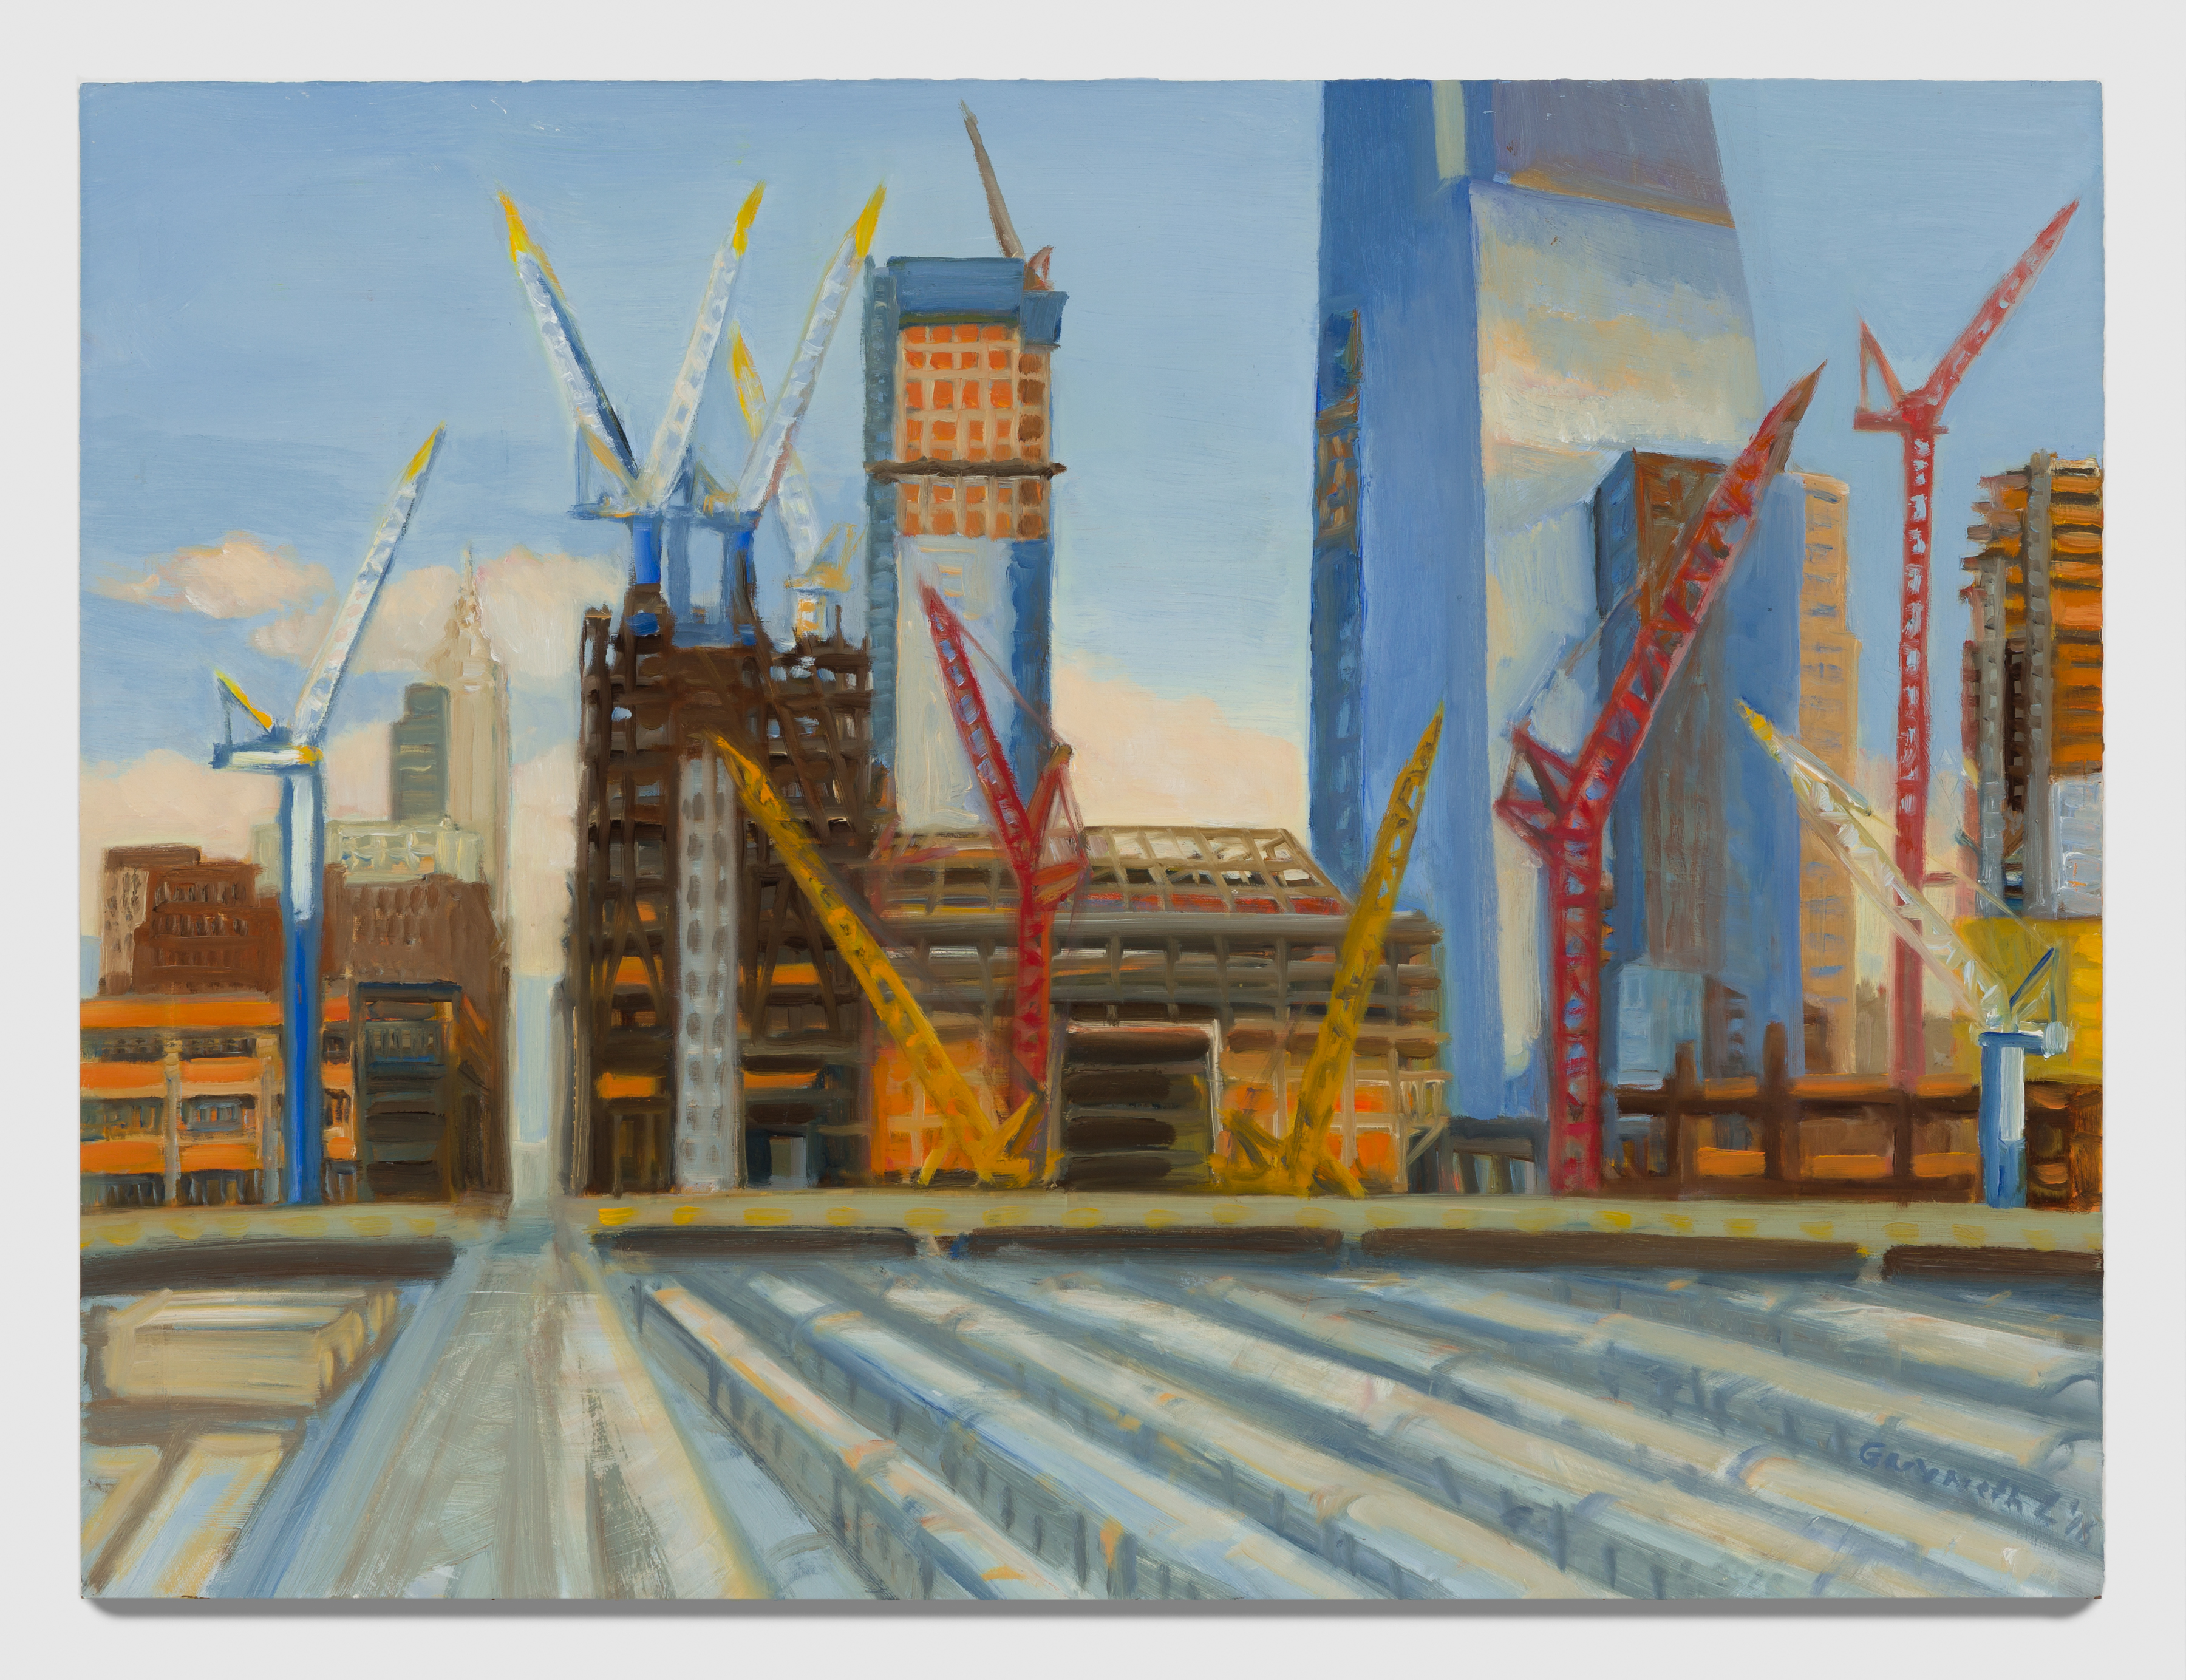 View Image Details Hudson Yards, June 2016